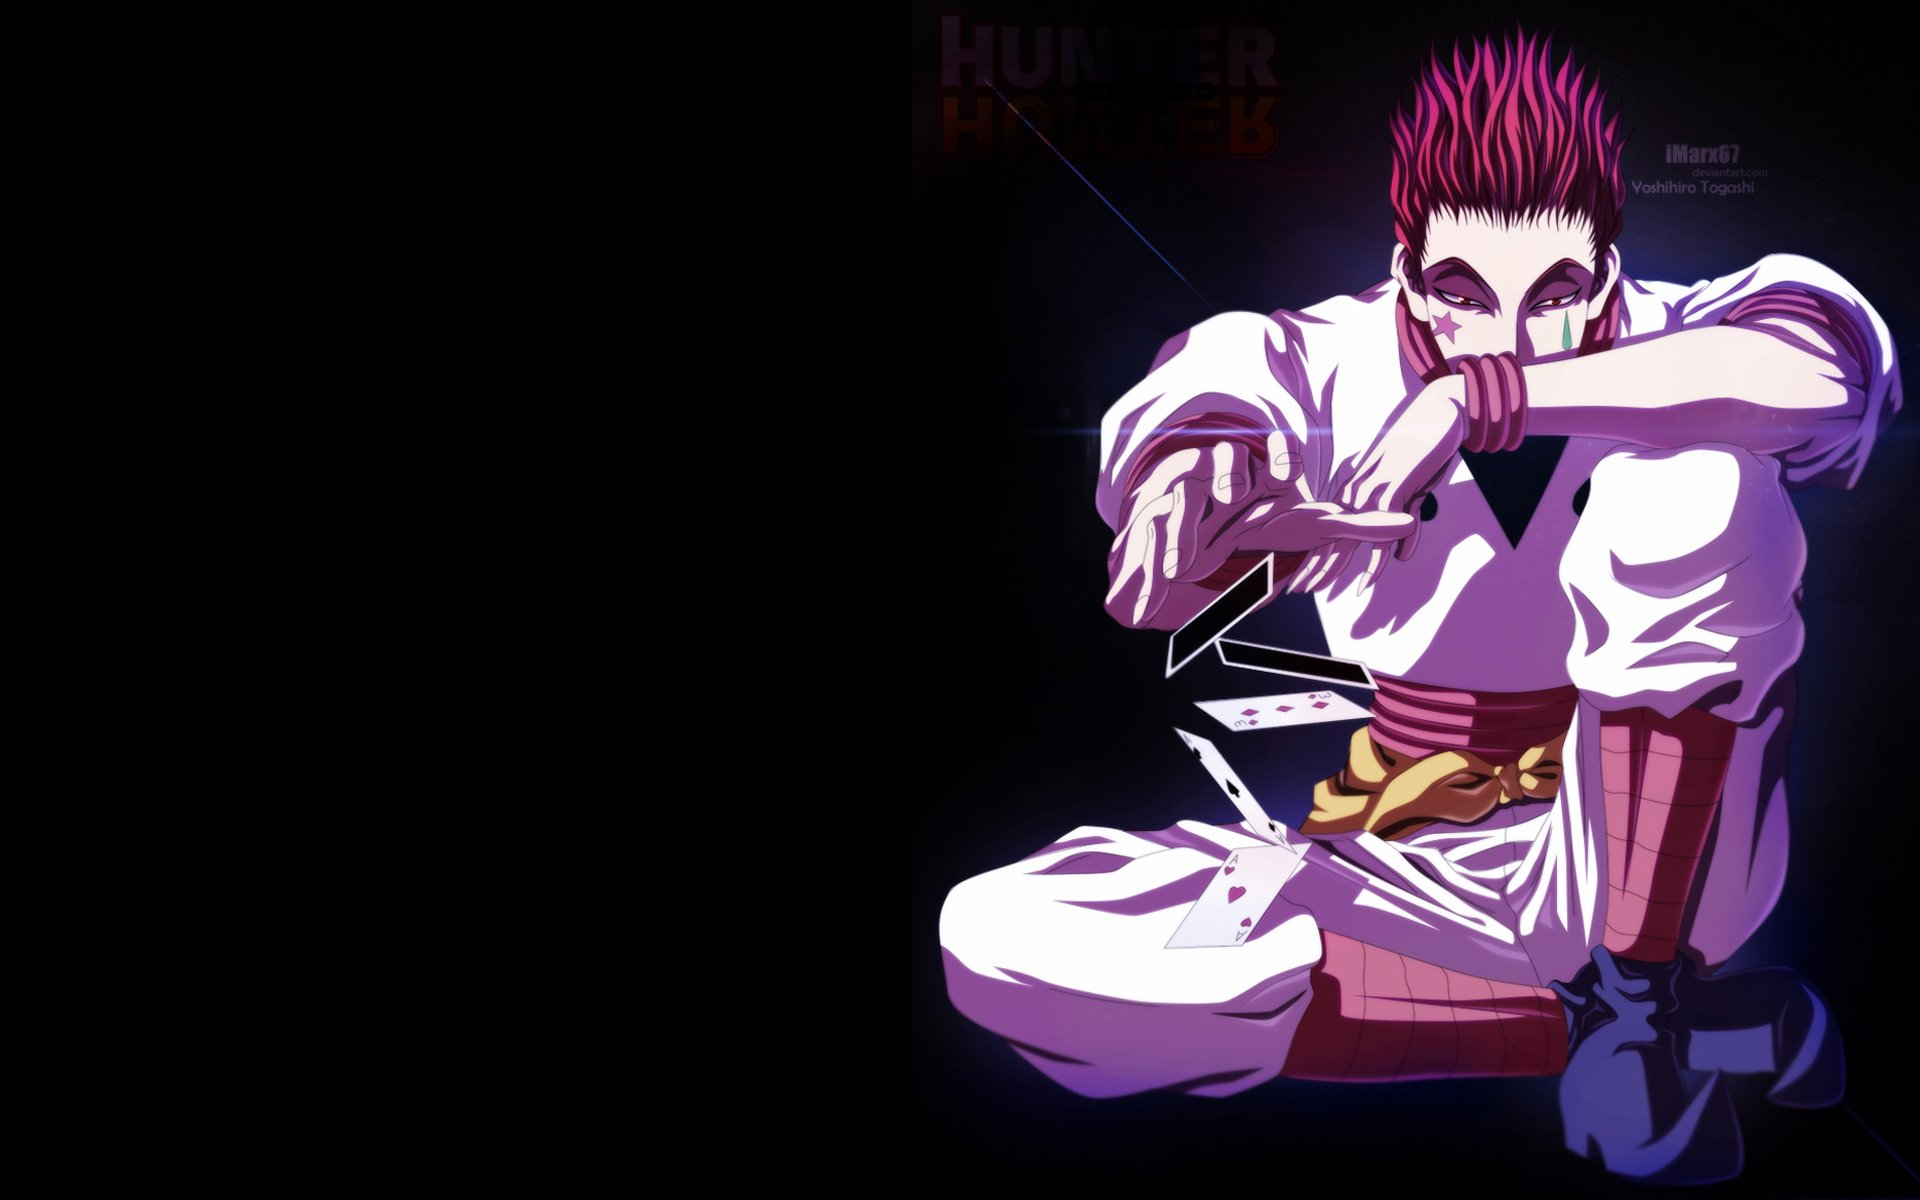 Tag Hunter X Hunter Wallpapers Hd For Pc Wallpaper Hd Desktop